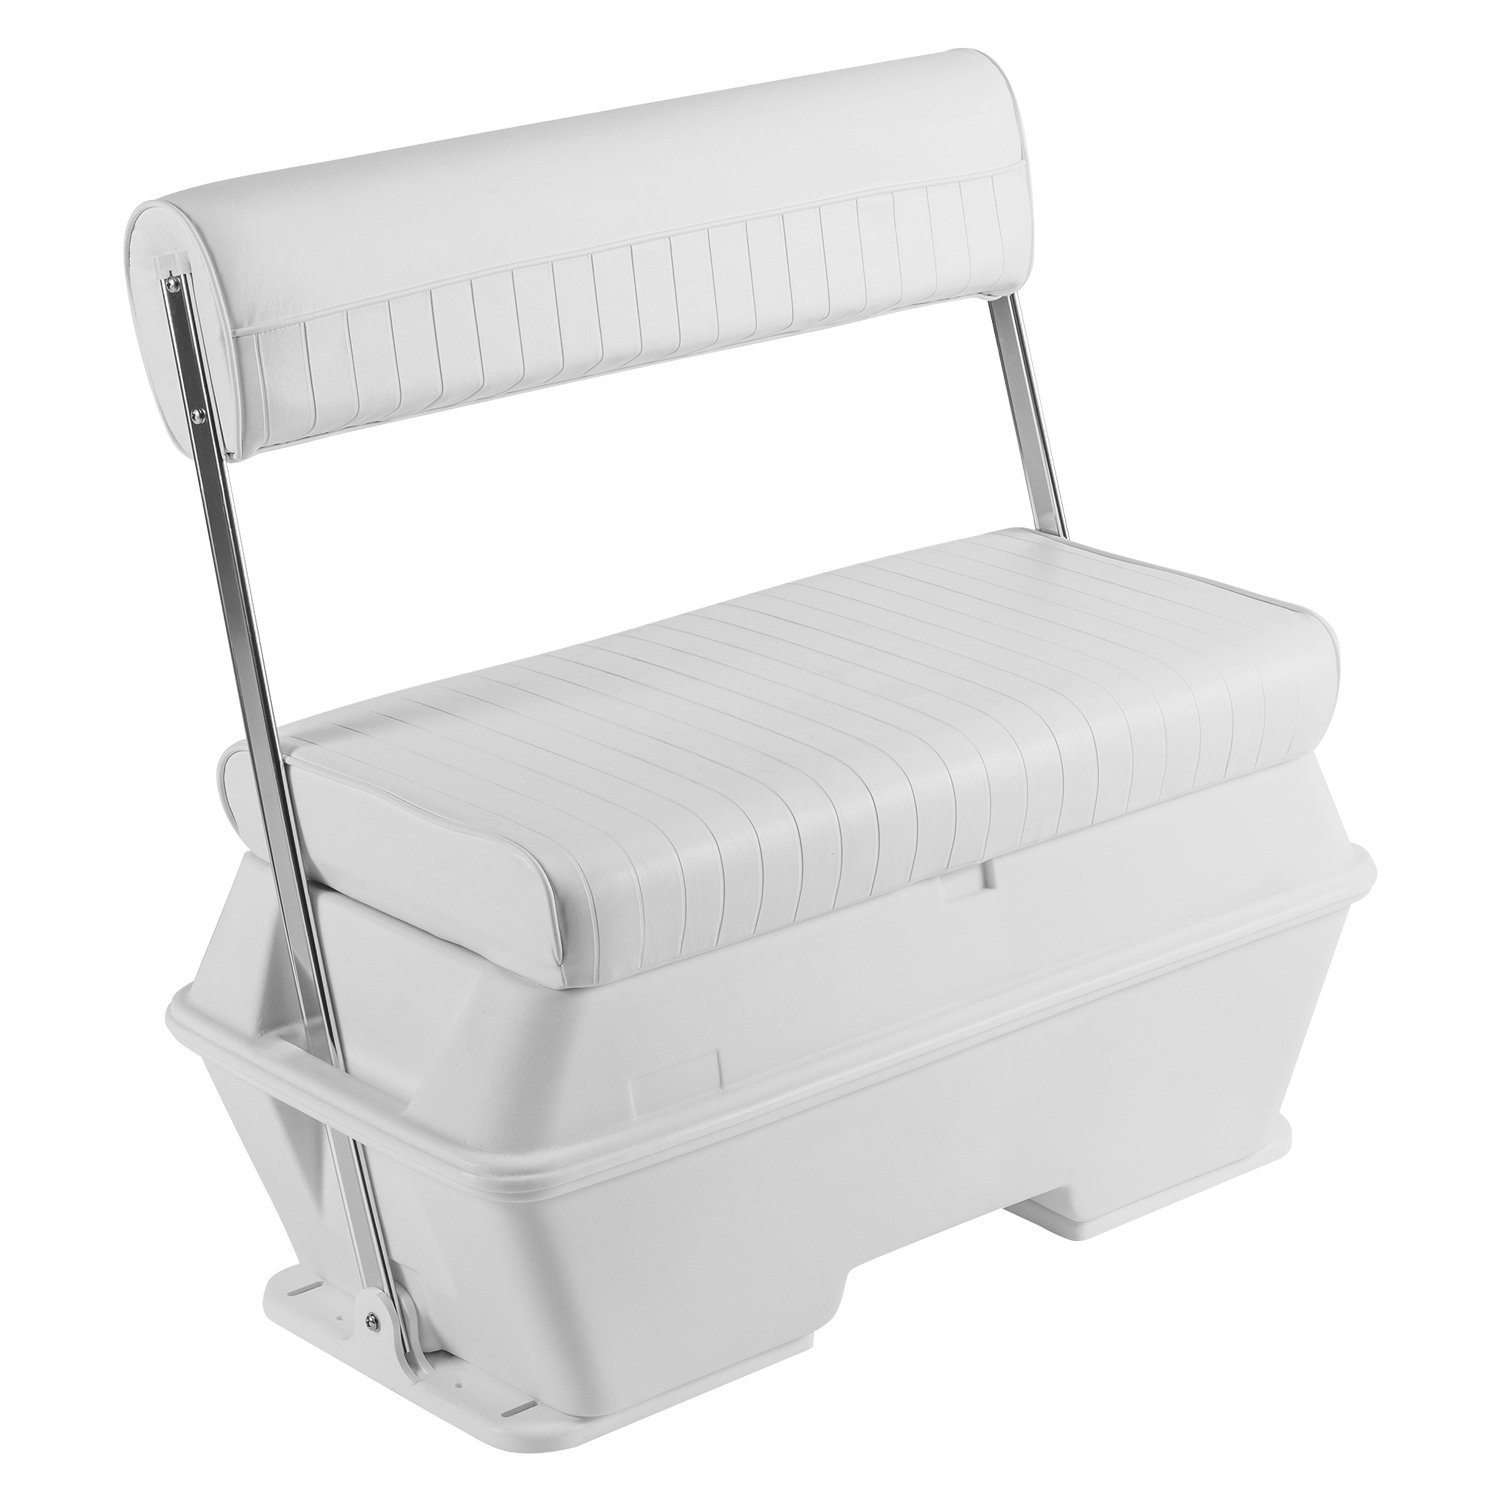 Wise 8WD159-784 Swingback Cooler Seat, 50-Quart, Cuddy Brite White by Wise